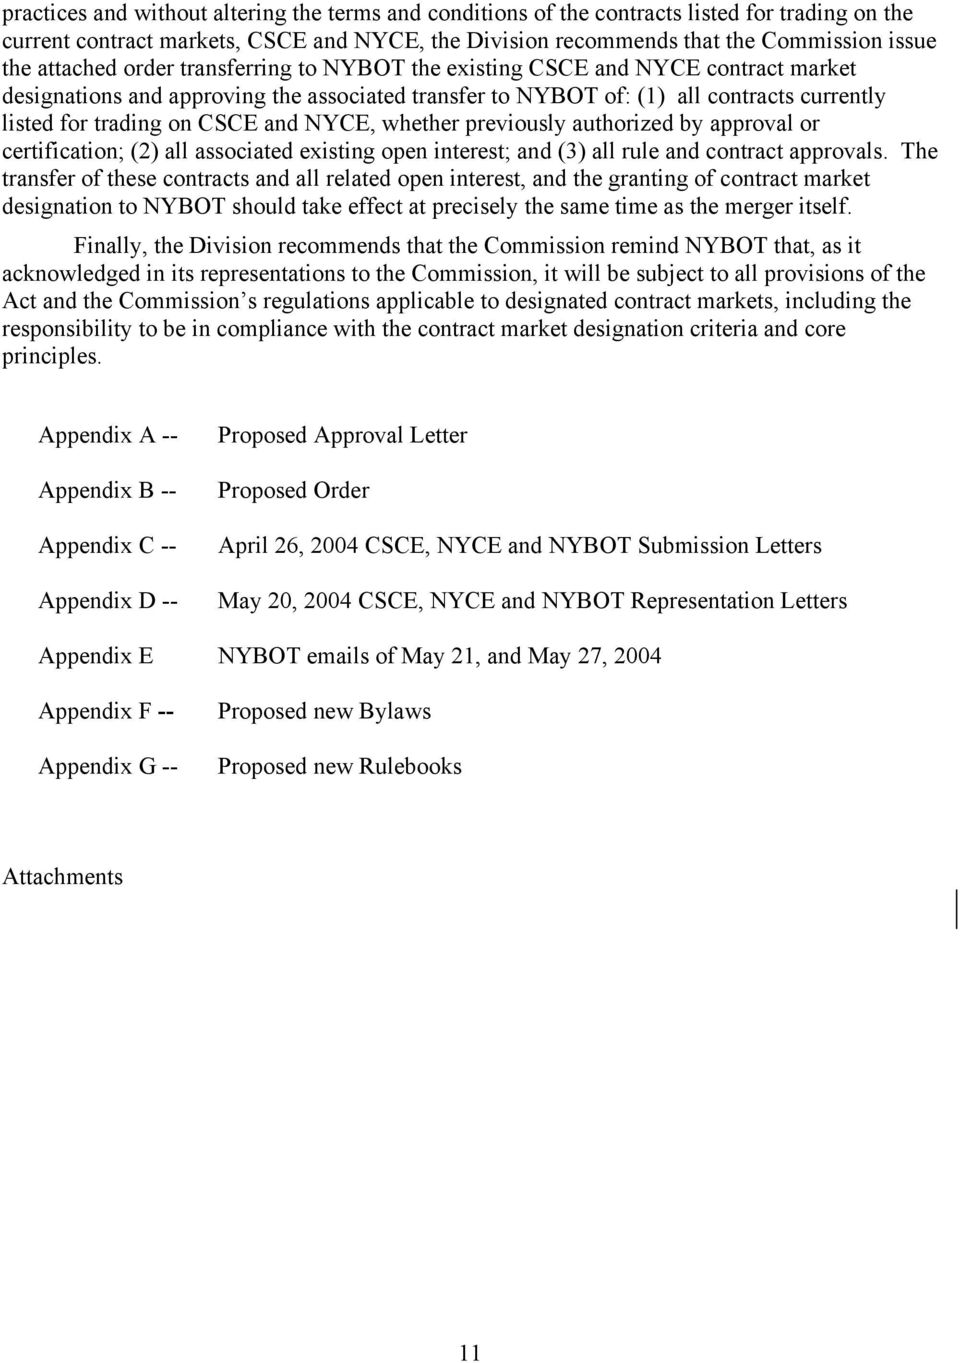 and NYCE, whether previously authorized by approval or certification; (2) all associated existing open interest; and (3) all rule and contract approvals.